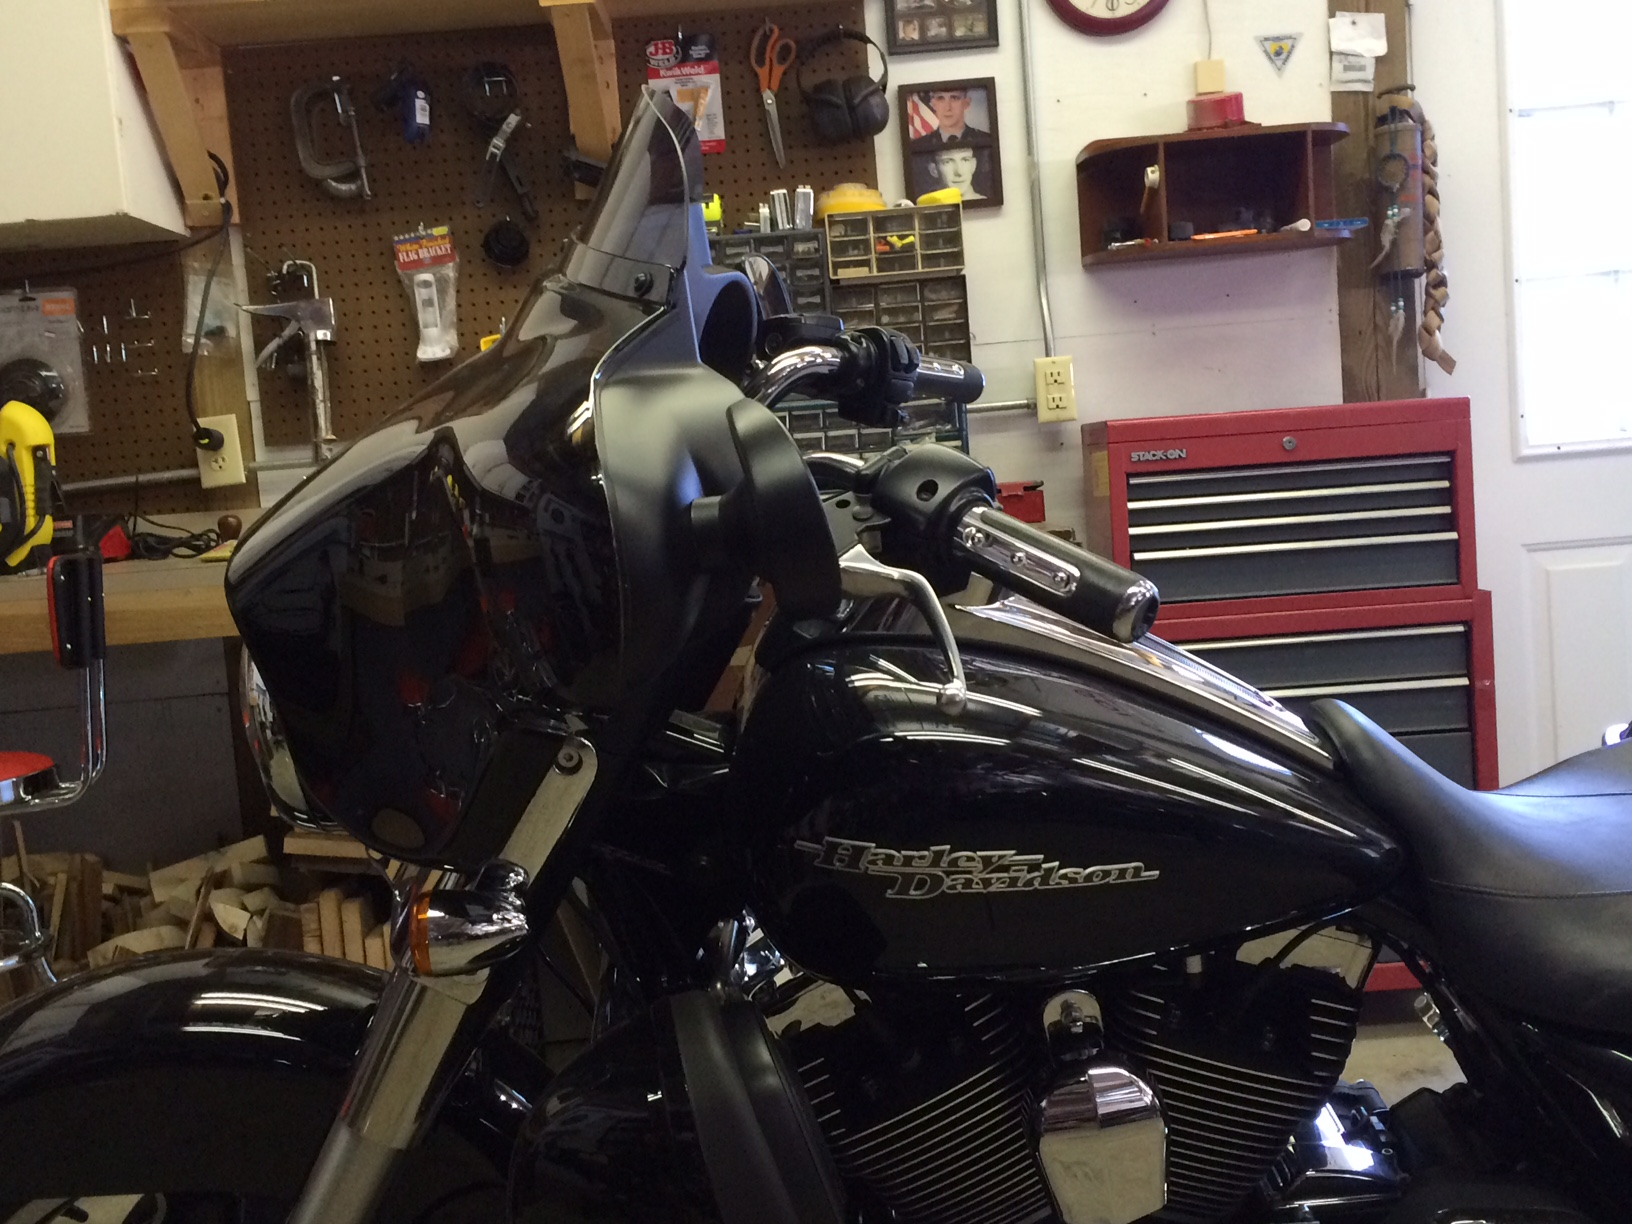 Kevin's 2013 Street Glide 14 inch Handlebar Install - Ride